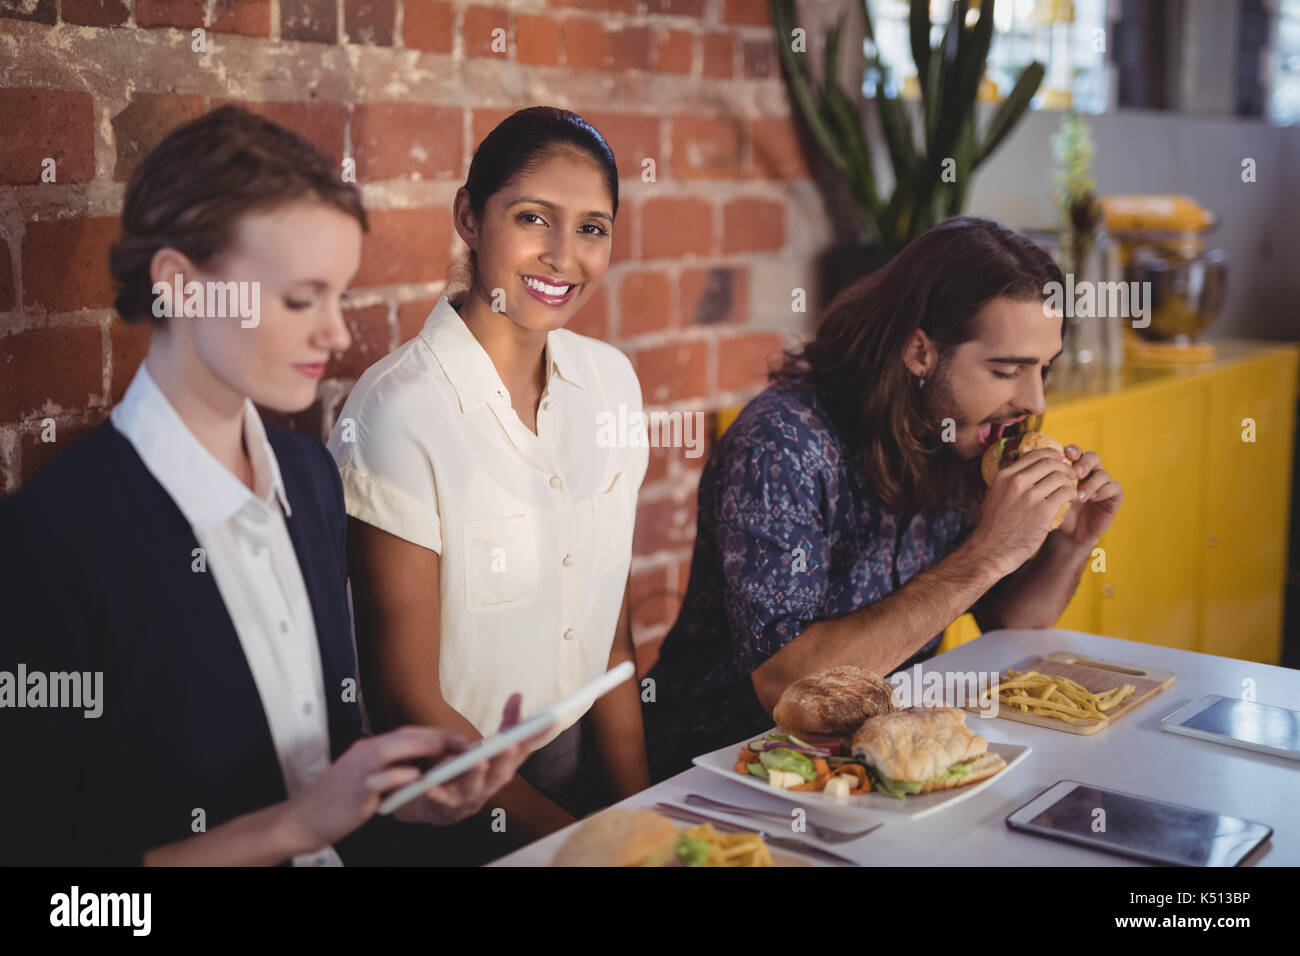 Portrait of smiling young woman sitting amidst friends at table with food in coffee shop - Stock Image